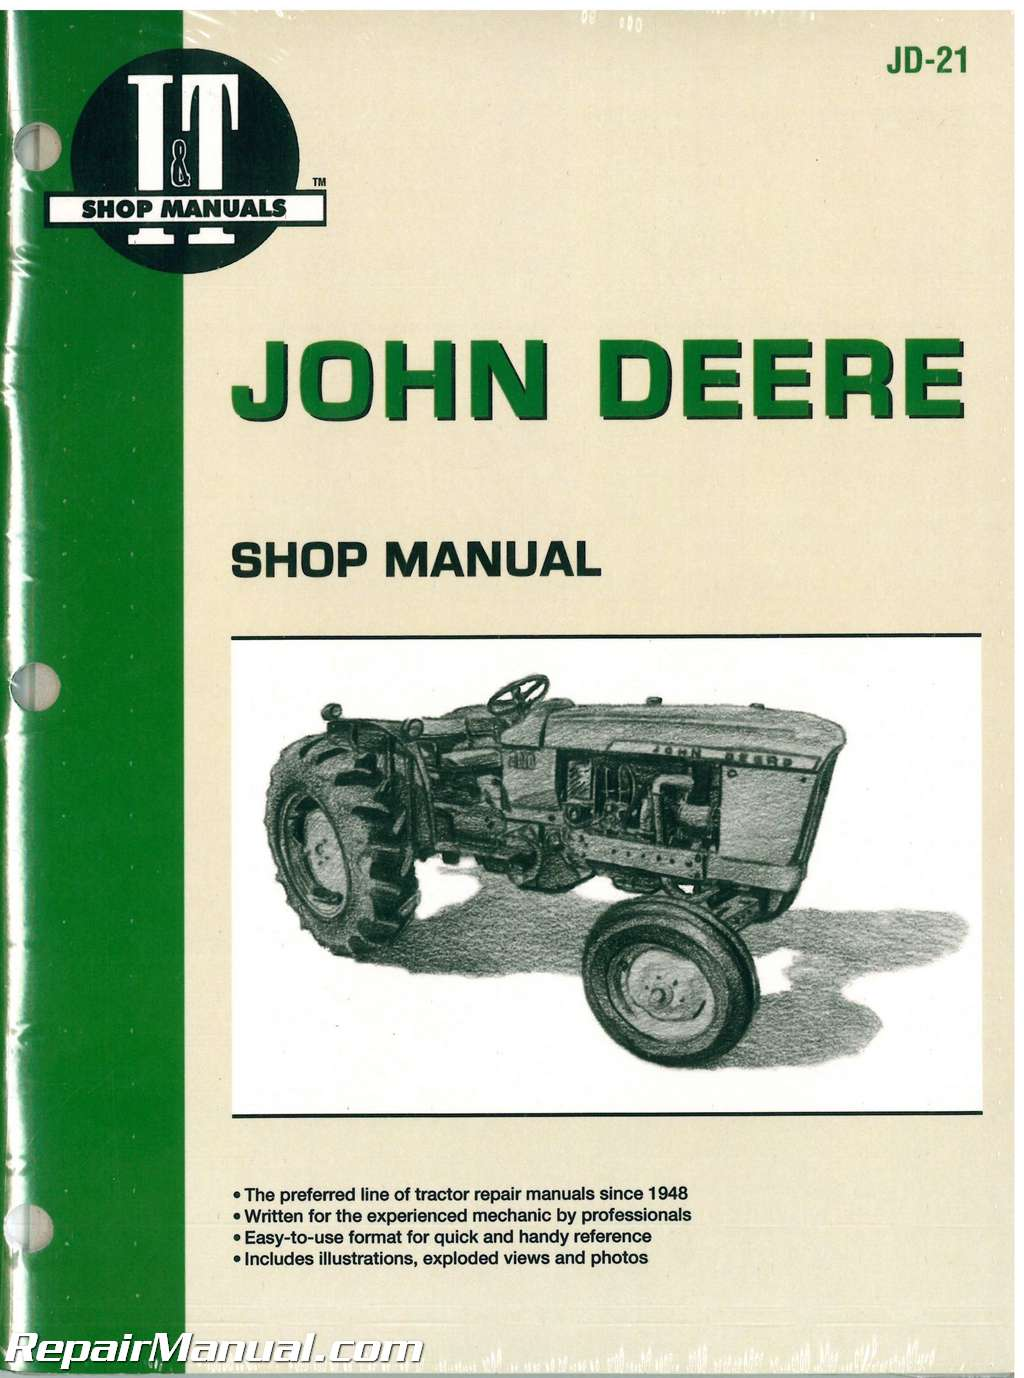 Wiring Diagram John Deere 140 - Wiring Diagram G11 on